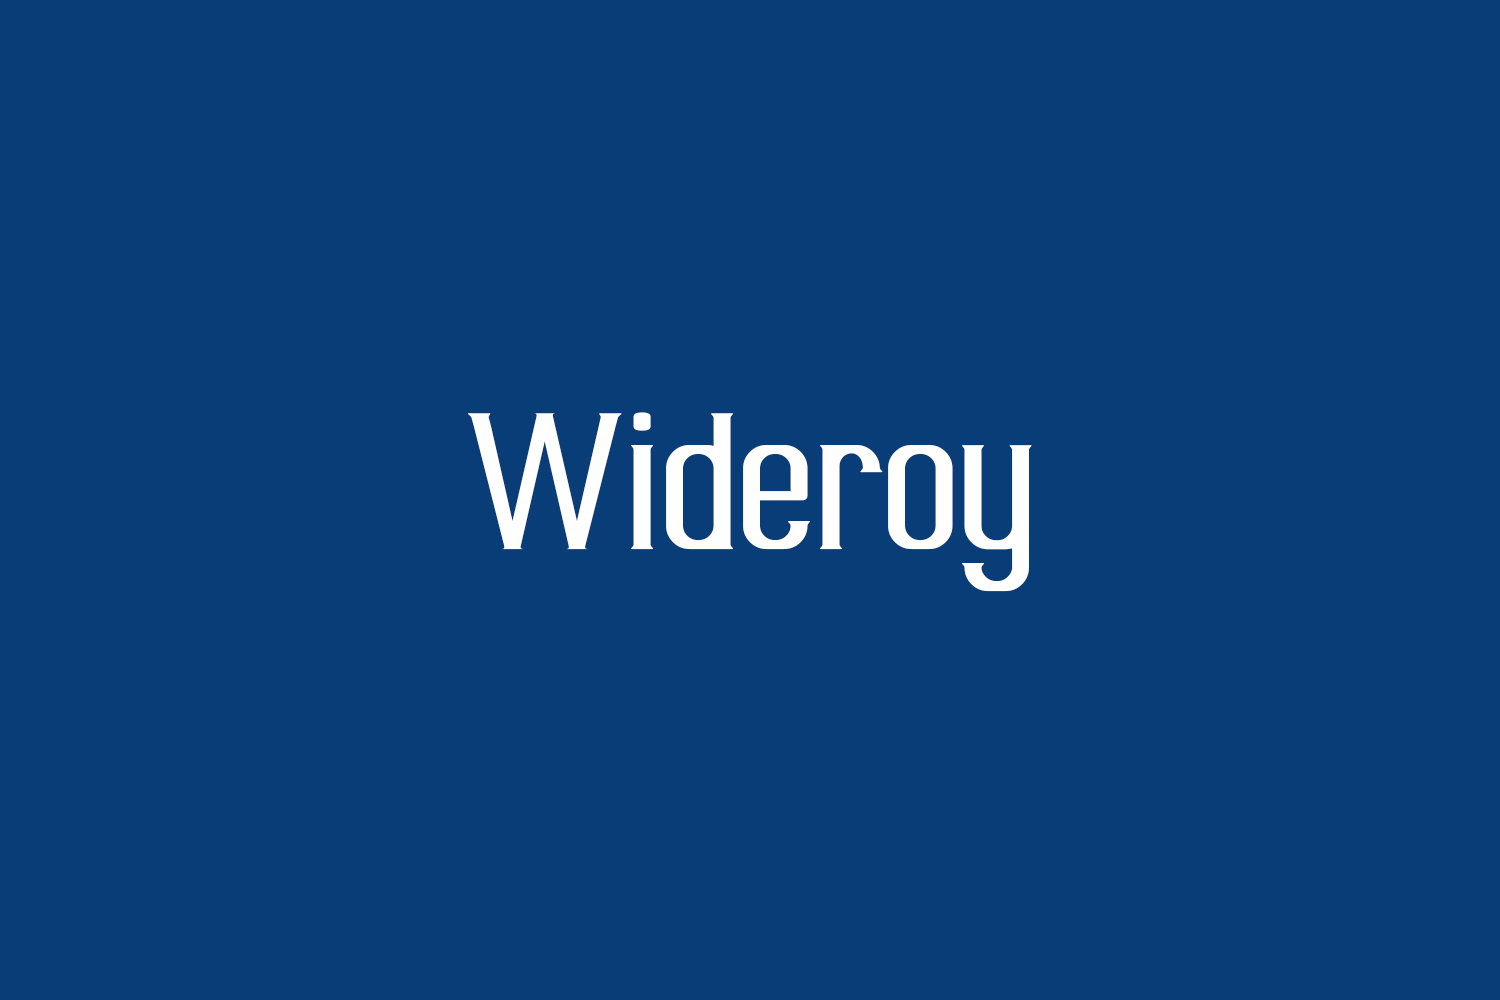 Wideroy Free Font